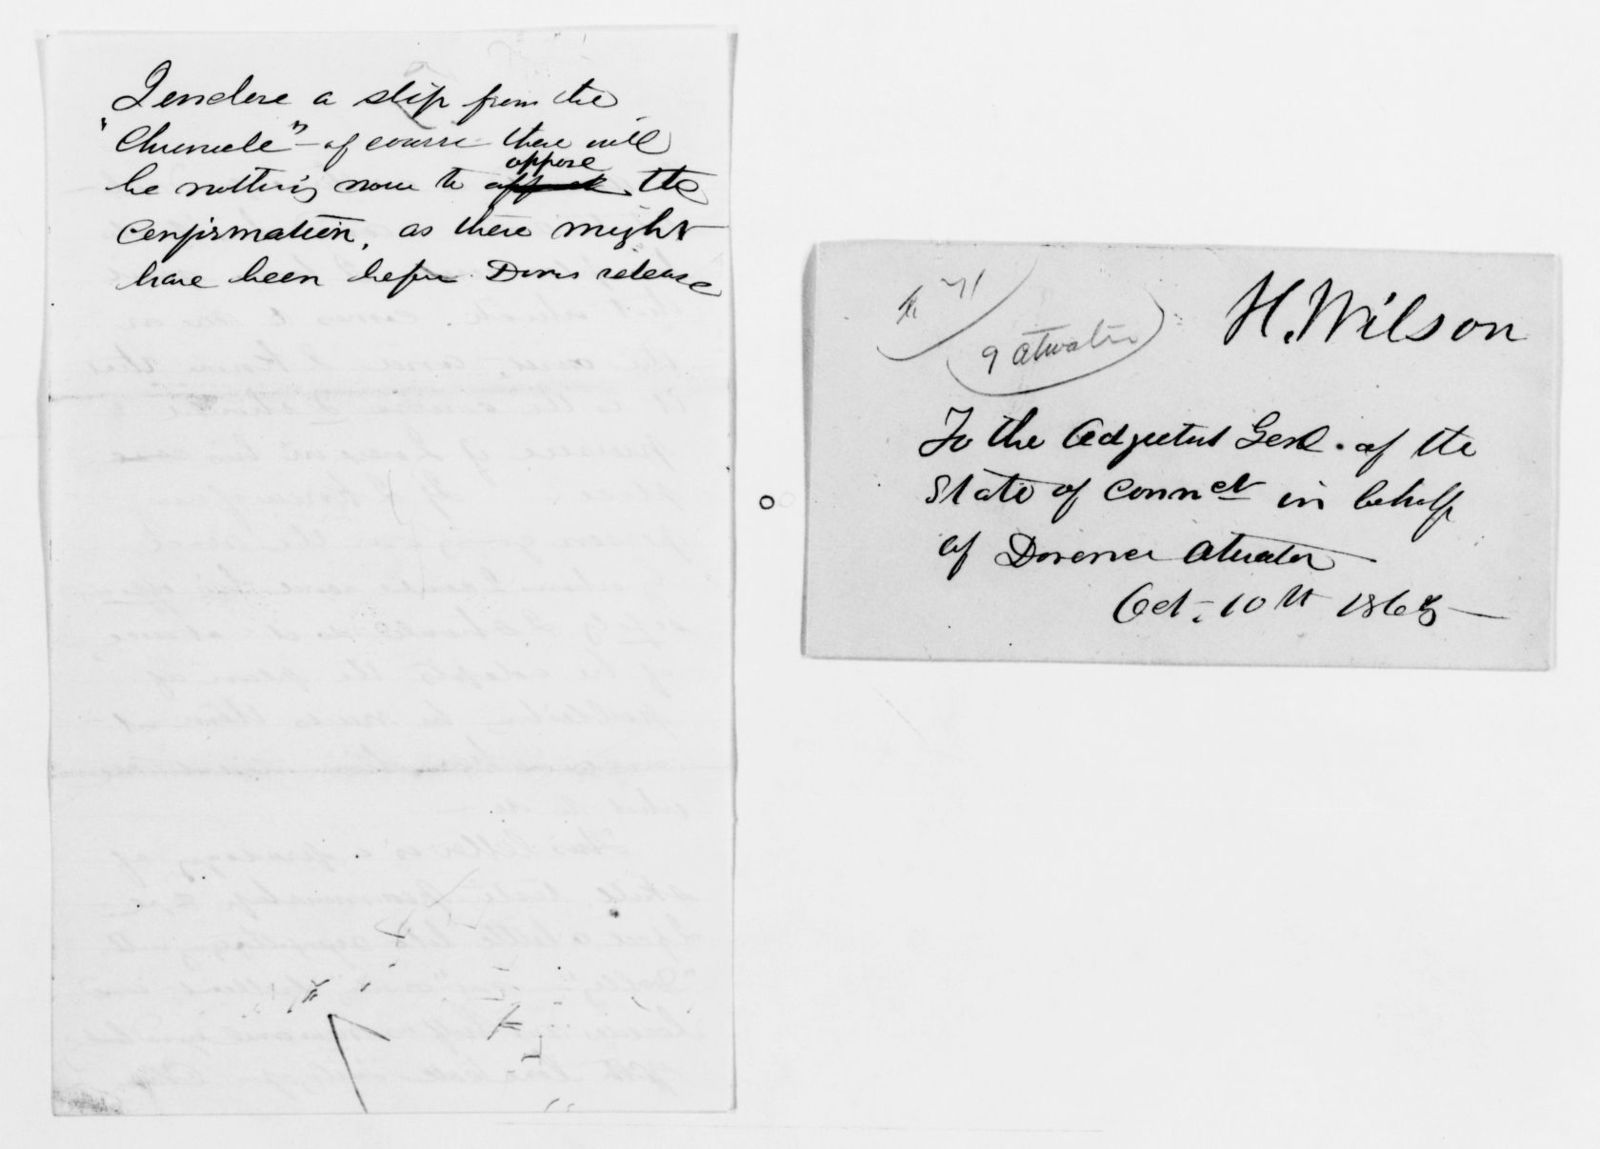 Clara Barton Papers: Subject File, 1861-1952; Civil War; Atwater, Dorence; Correspondence, 1865-1912, undated, Atwater, Dorence